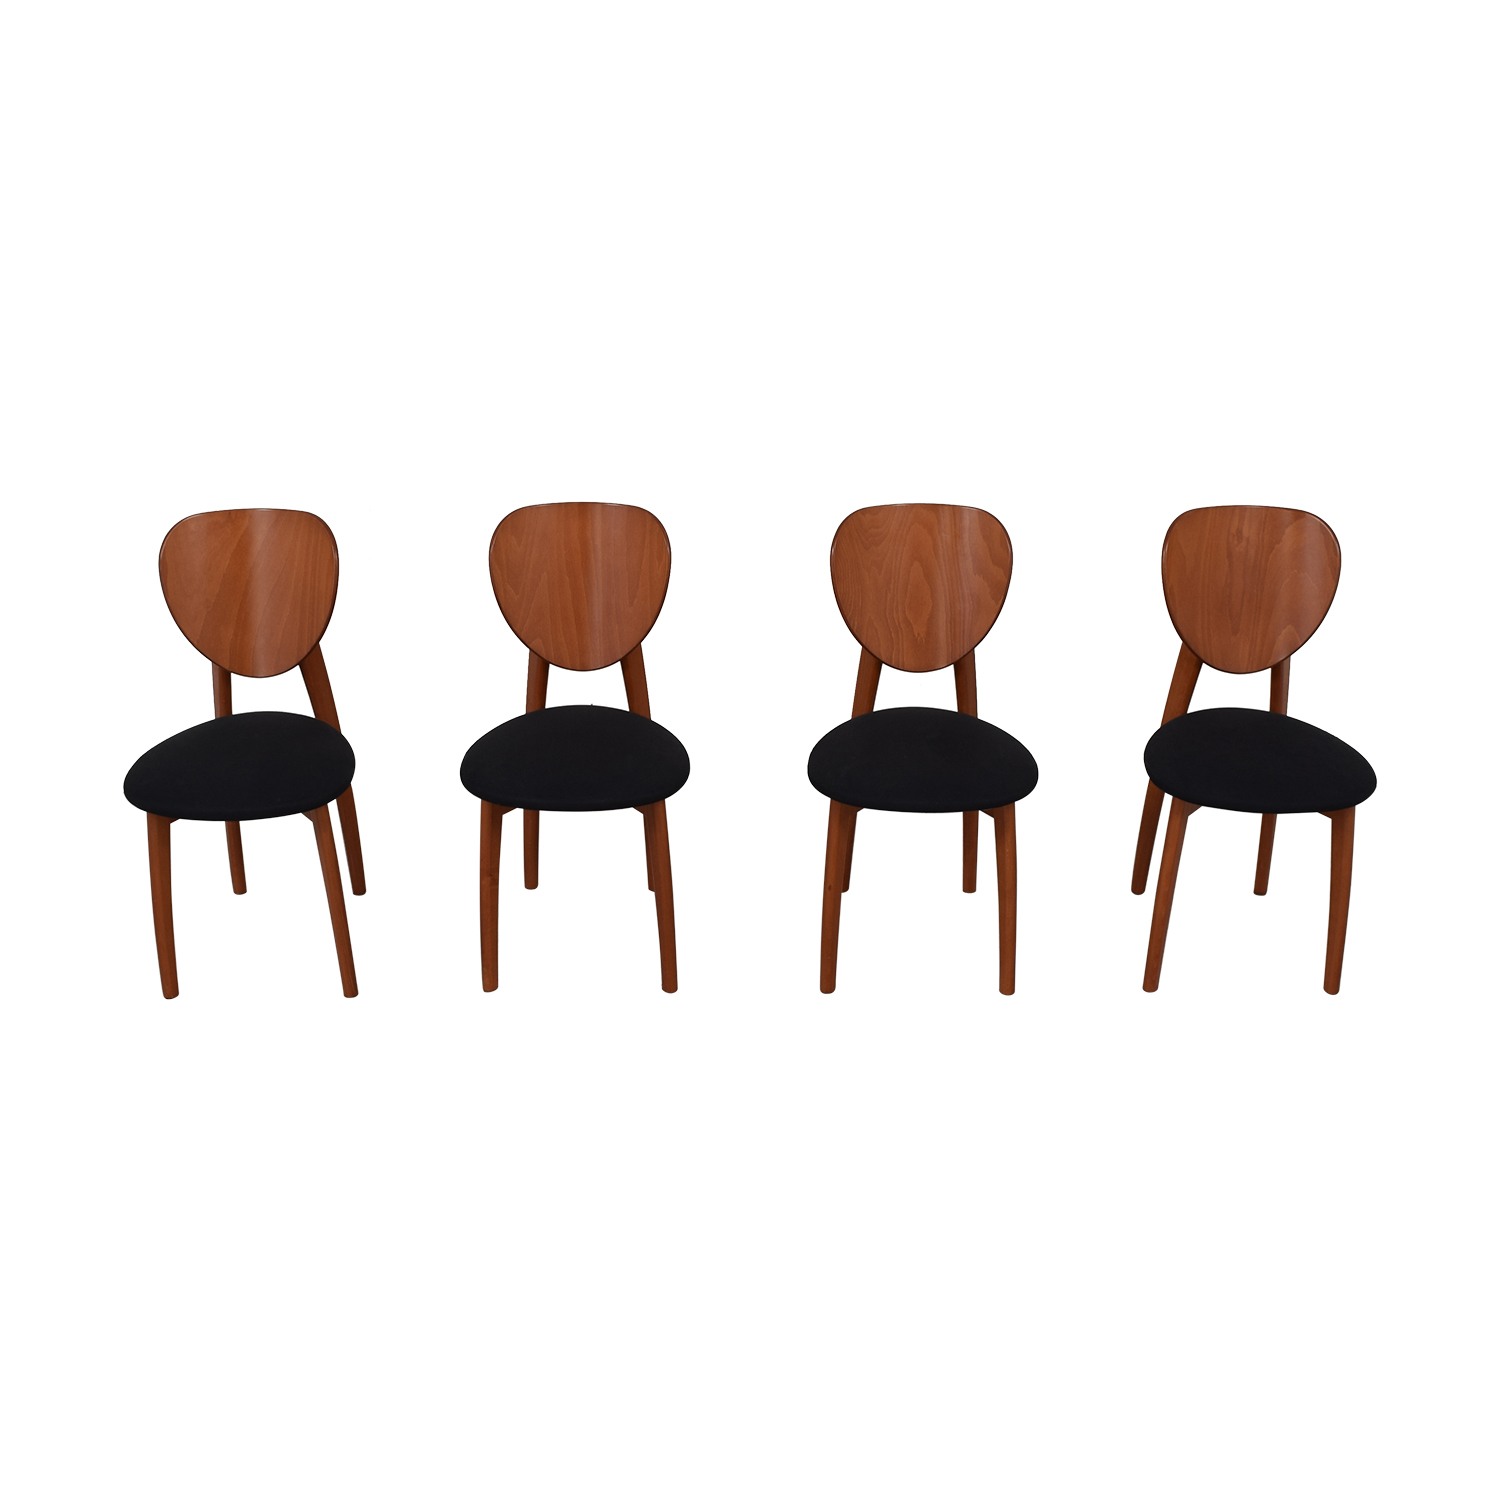 Calligaris Calligaris Dining Chairs second hand